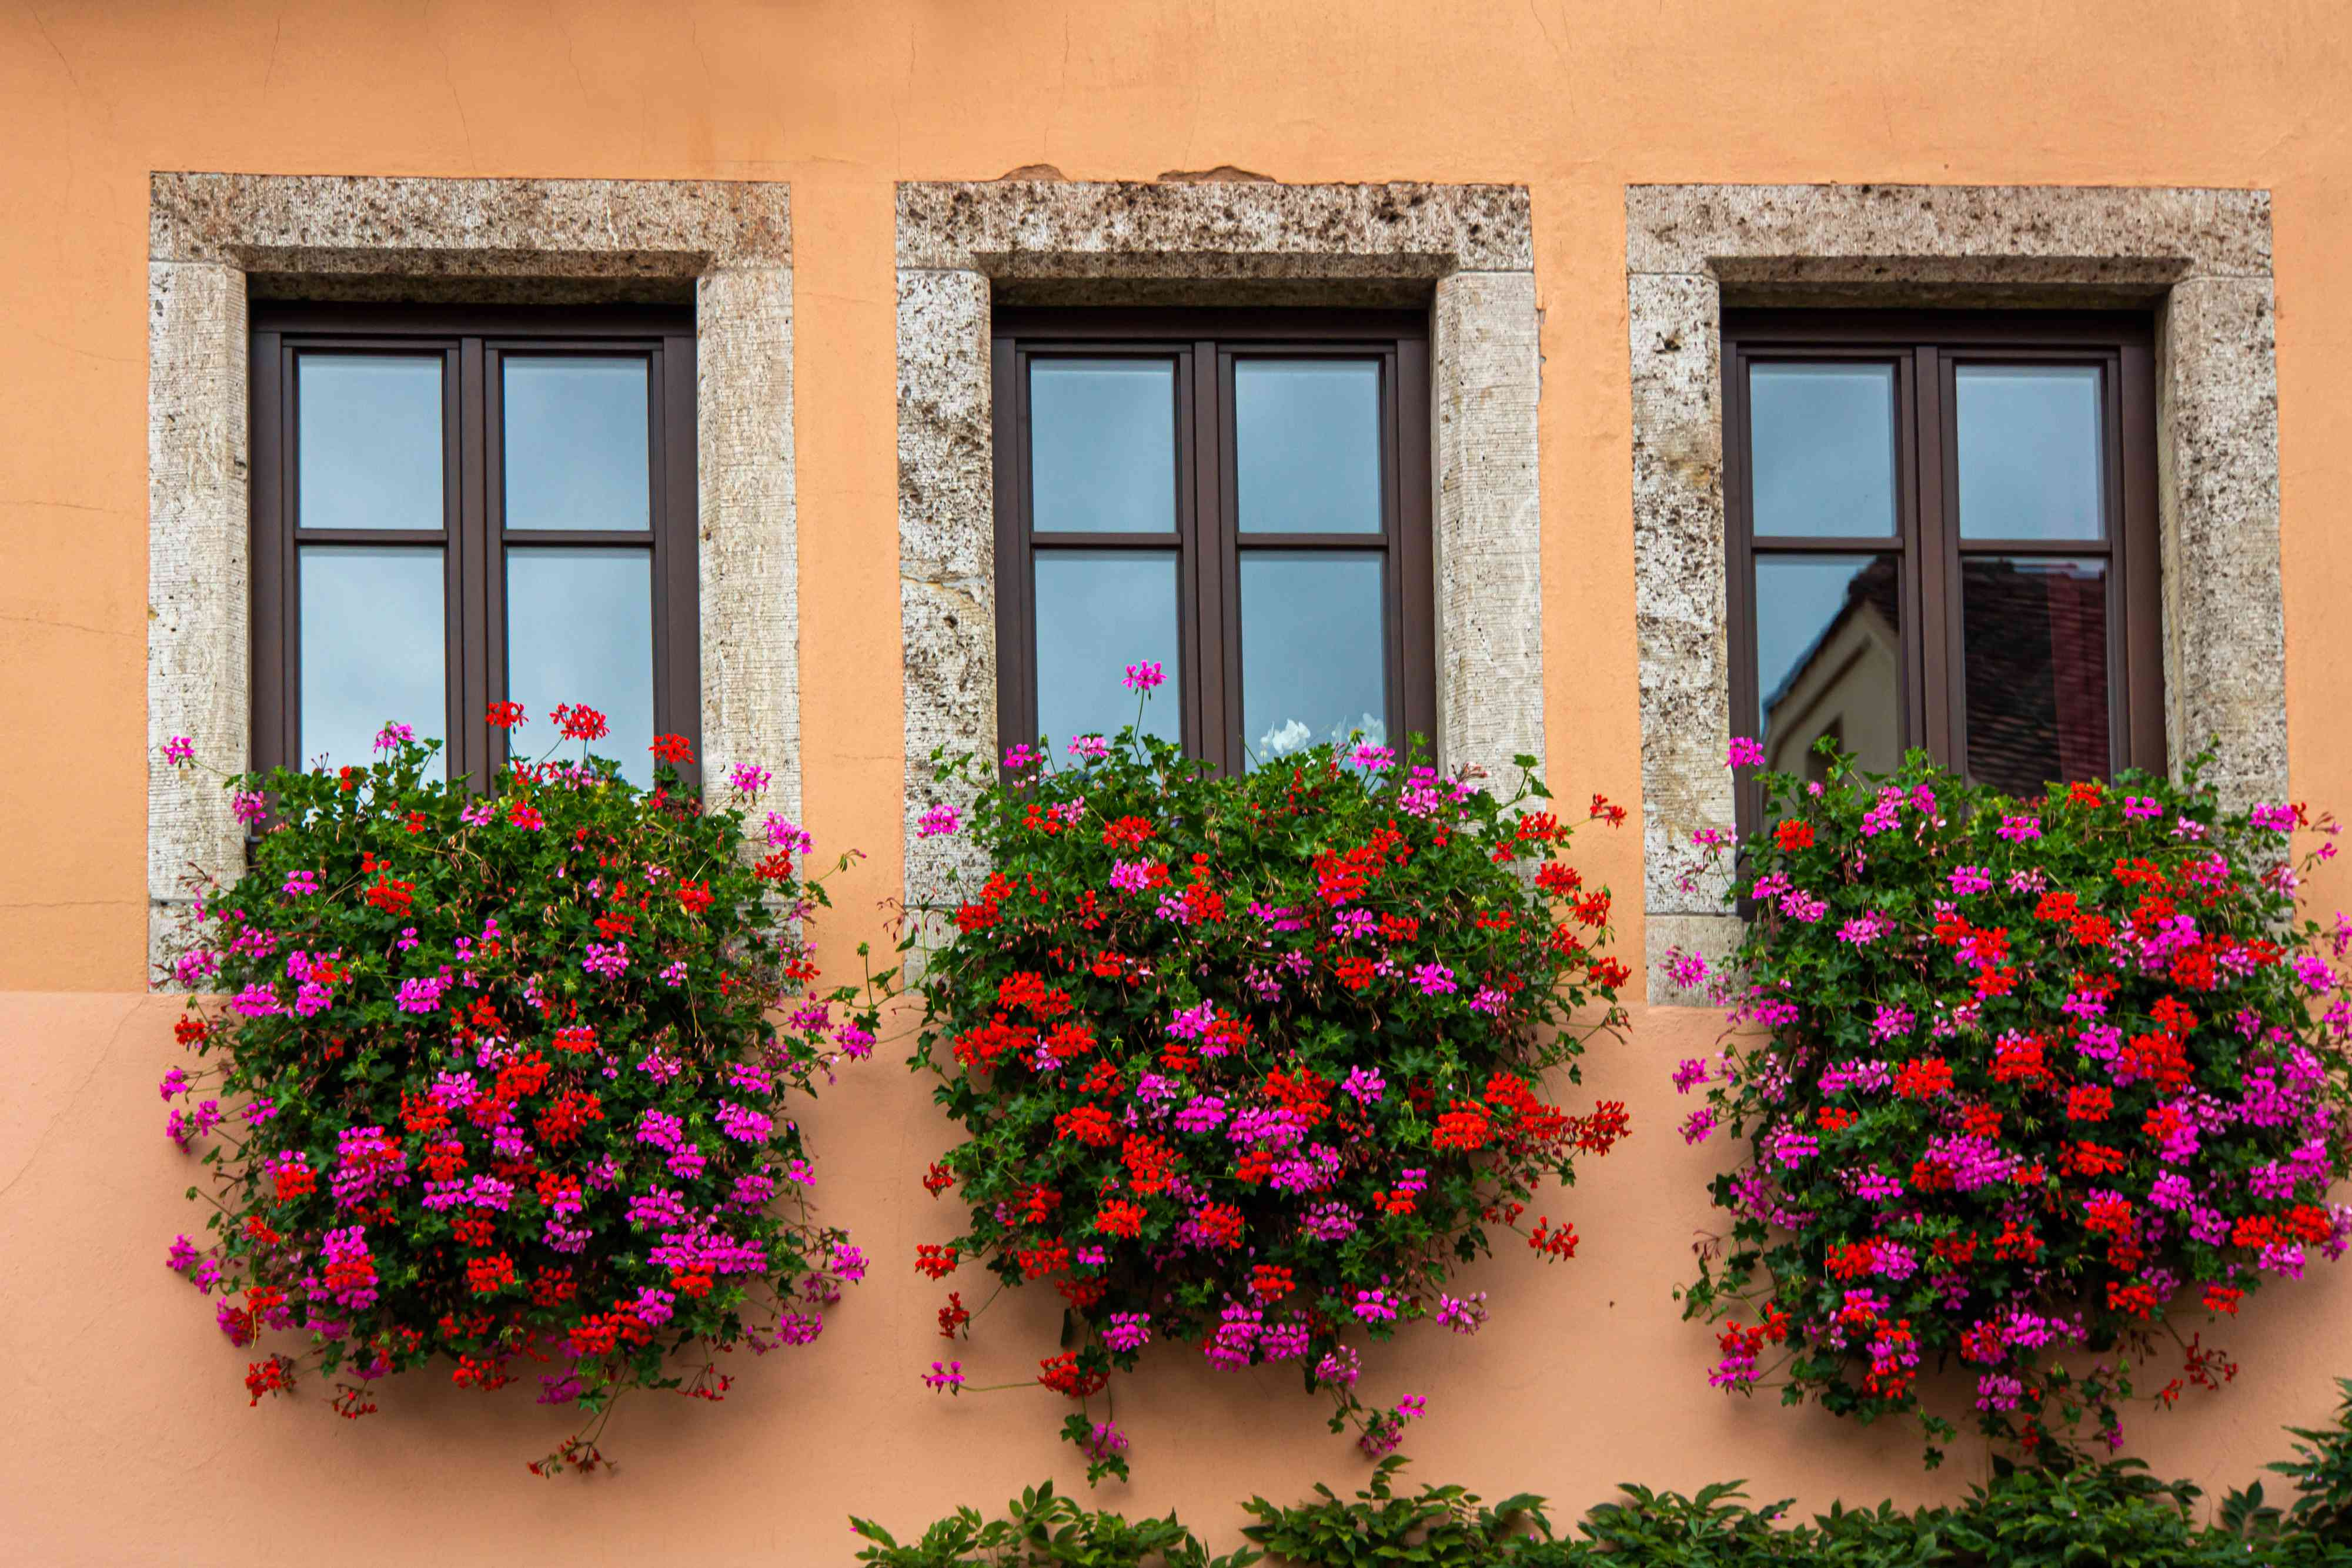 Ivy geranium plants hanging outside window sills with pink and red flowers